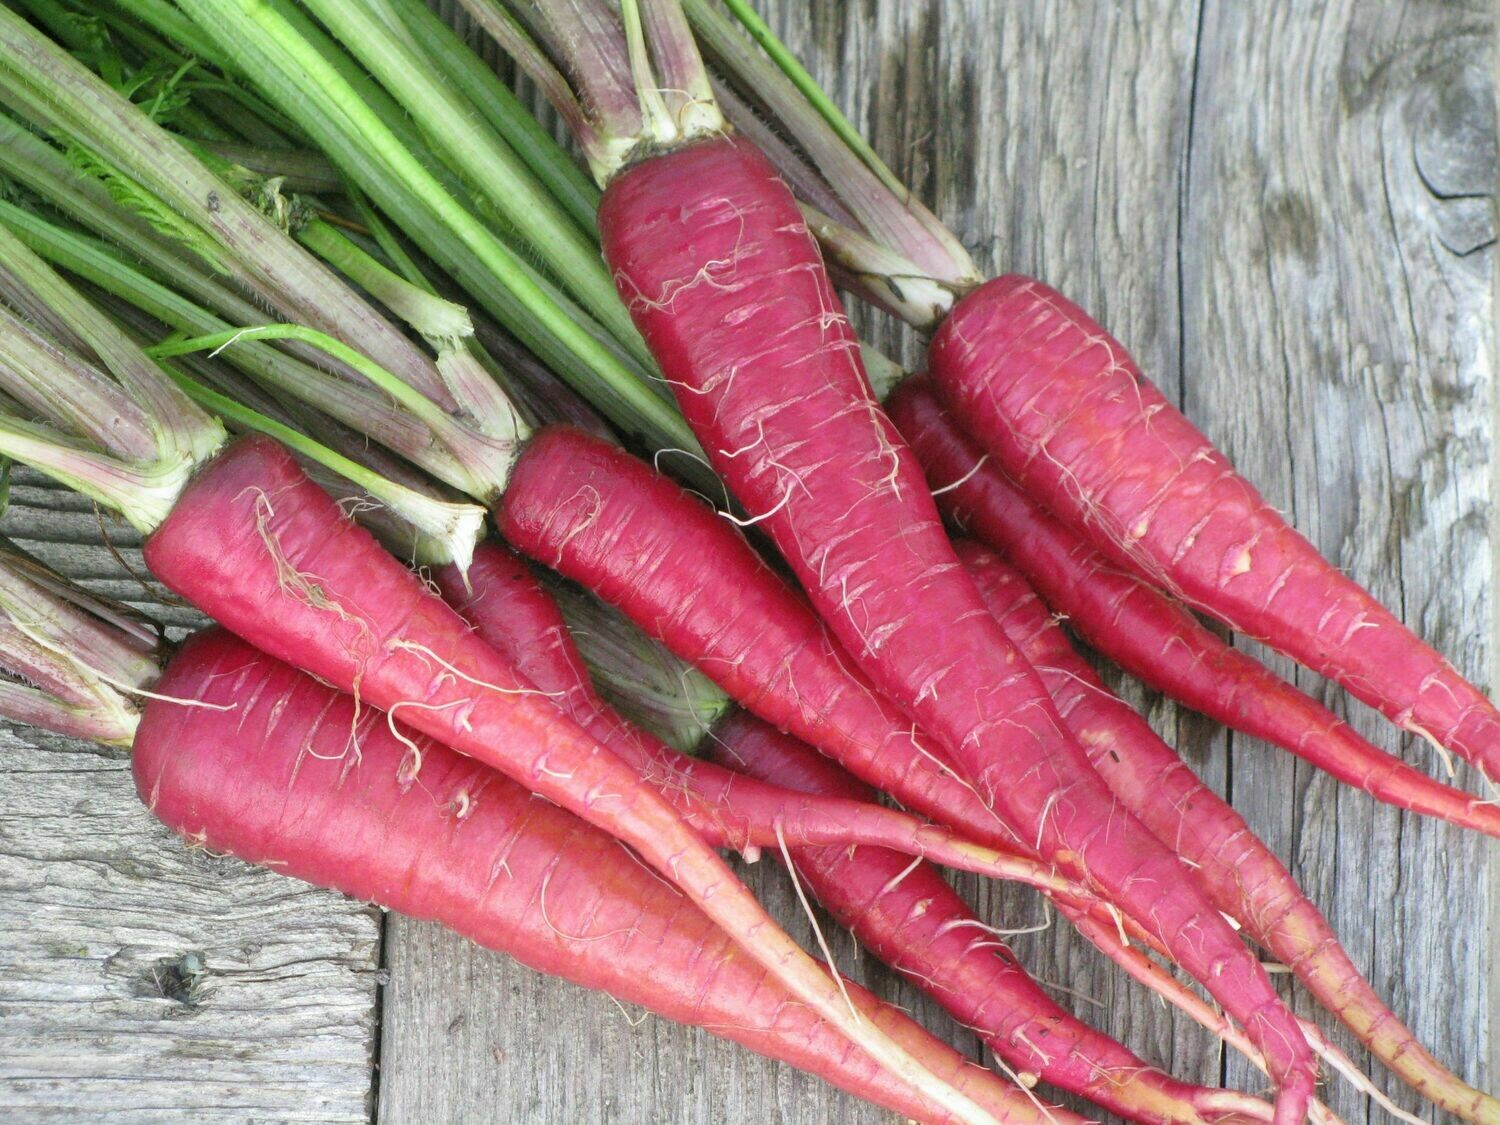 PURPLE DRAGON CARROT Seeds